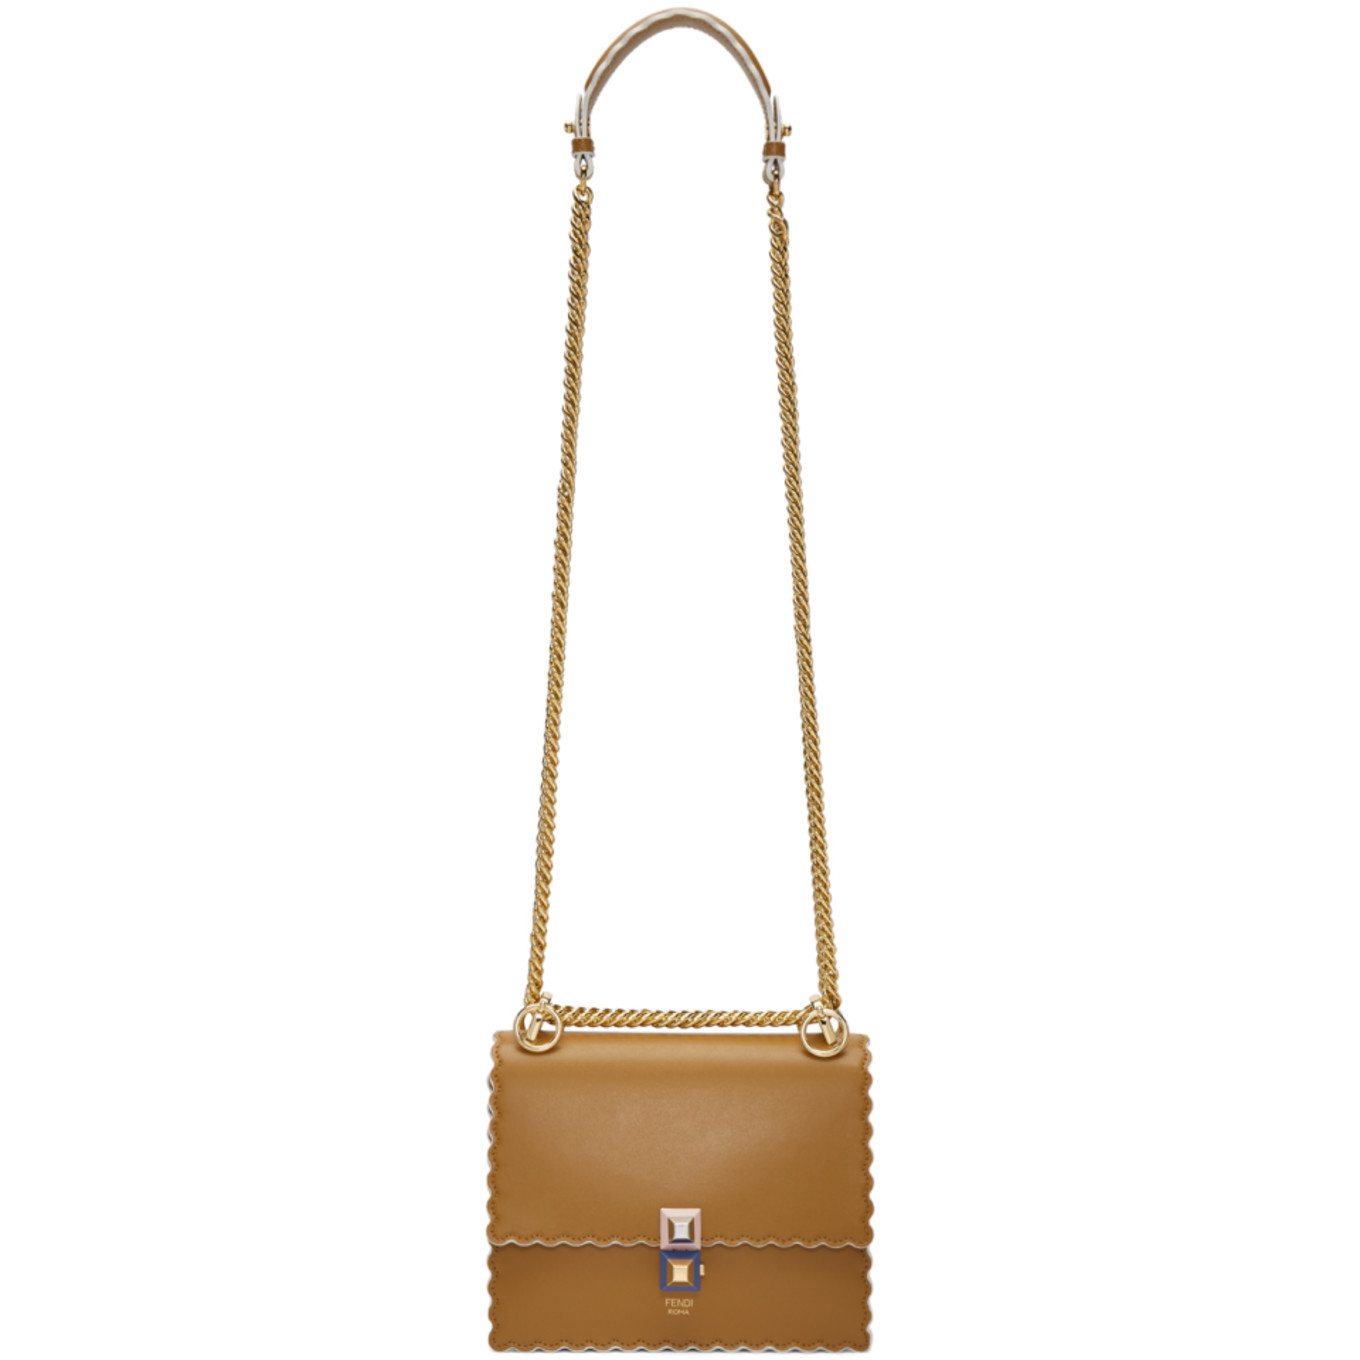 Tan Small Scalloped 'kan I' Bag by Fendi